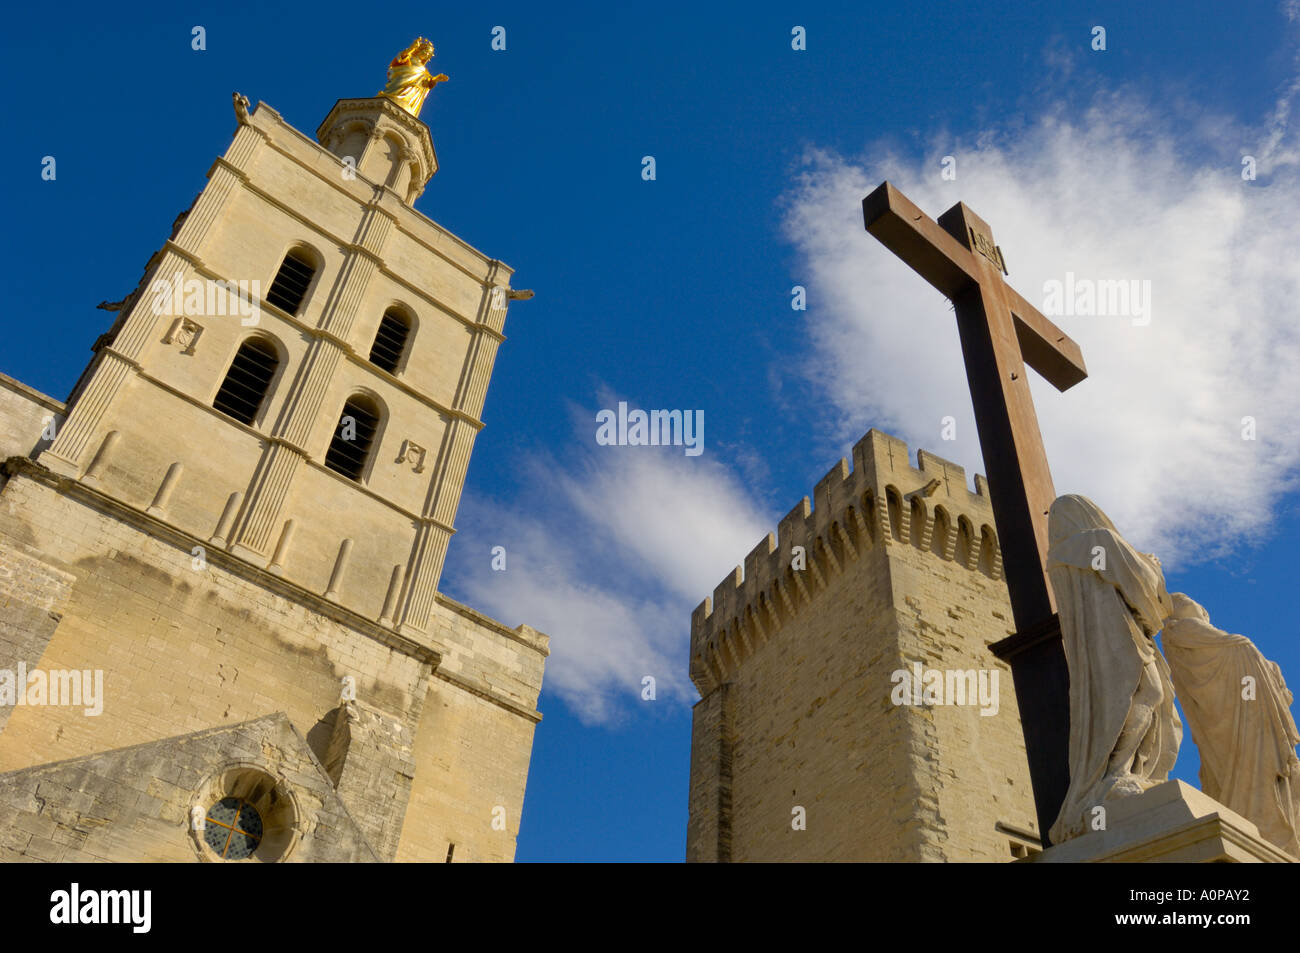 Religious iconography at the Palais des Papes, Avignon, France - Stock Image